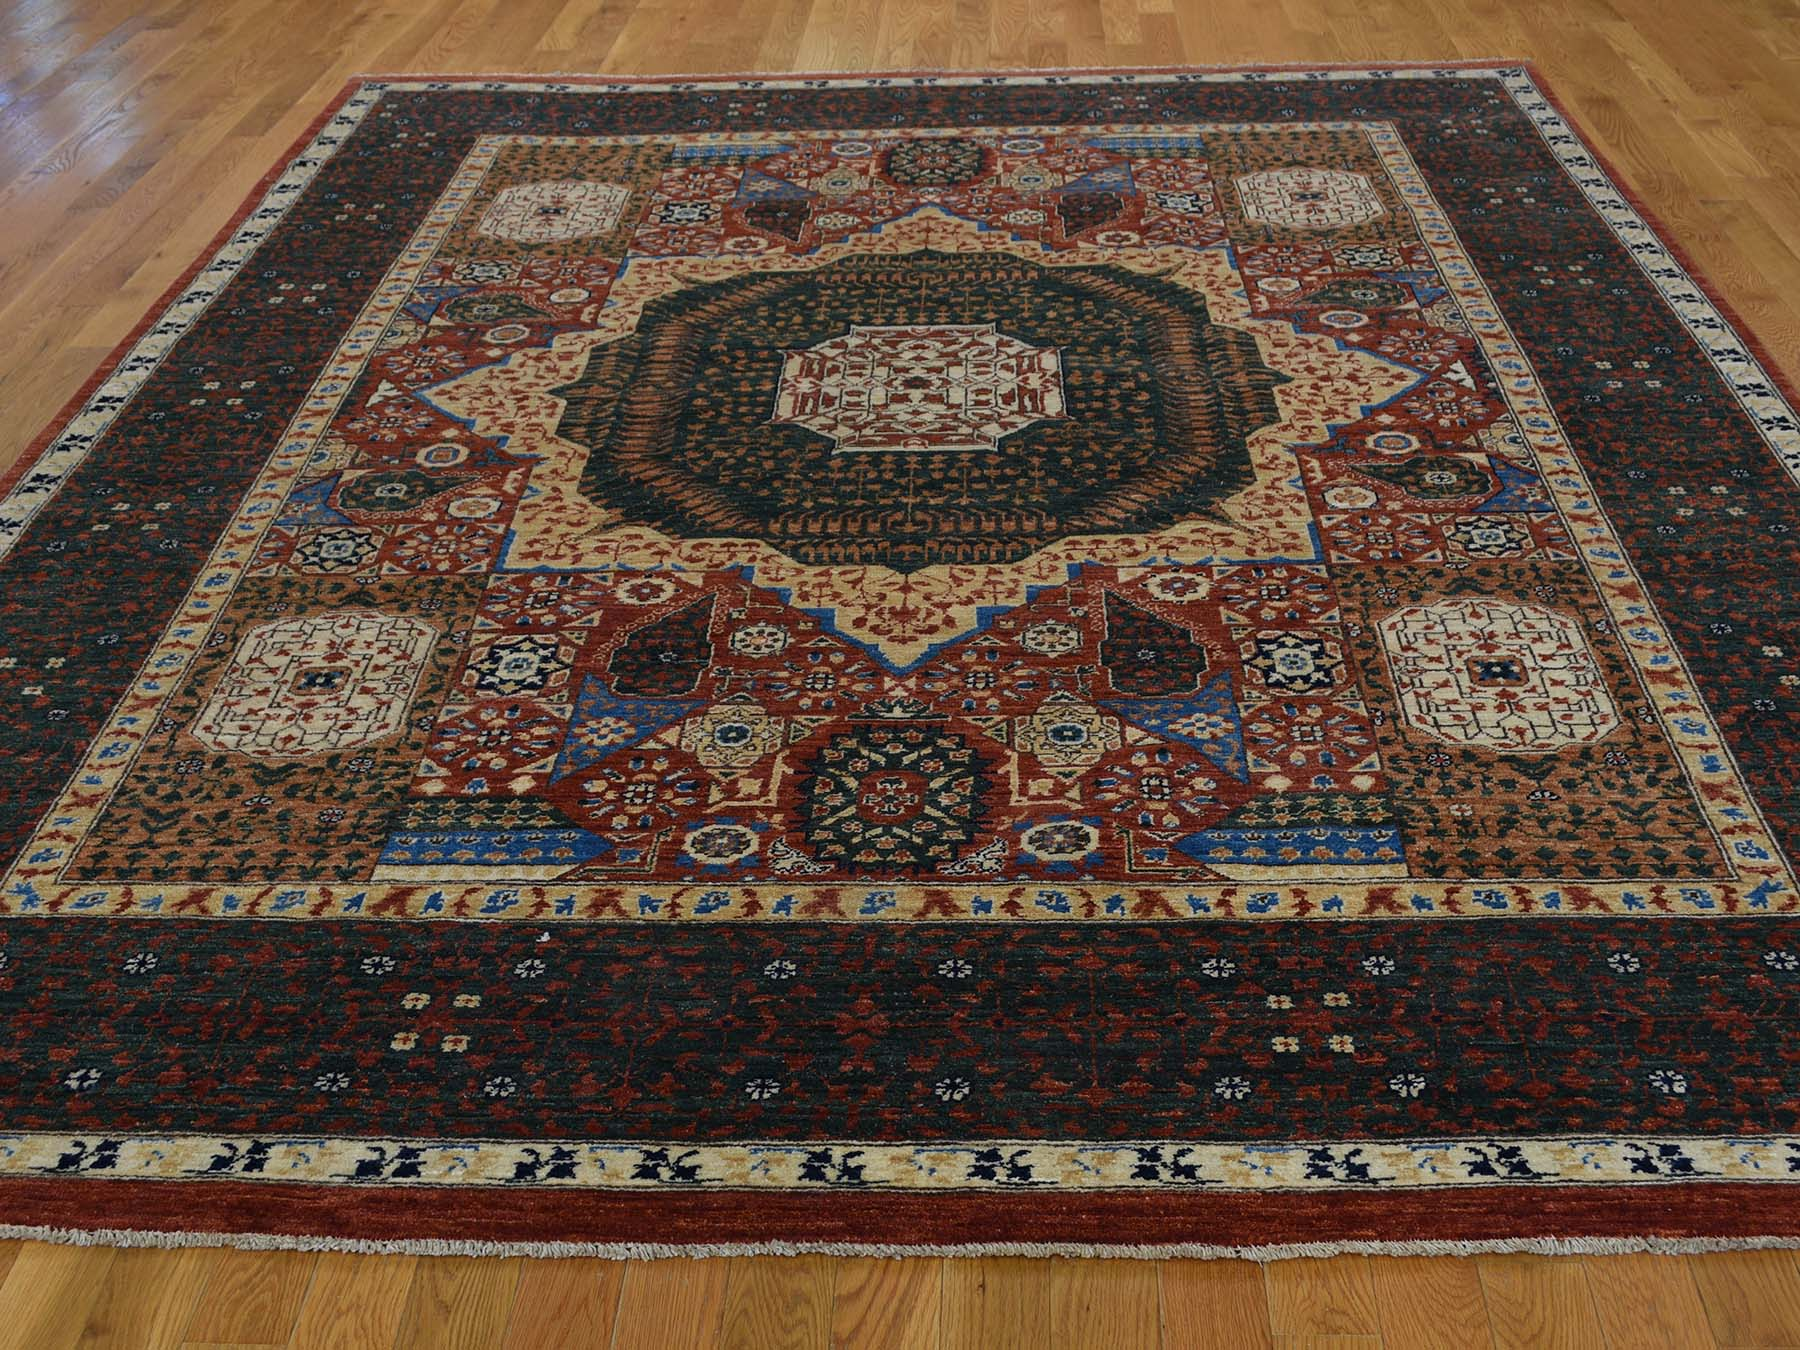 8-1 x10- Peshawar with Mamluk Design Hand-Knotted Pure Wool Oriental Rug